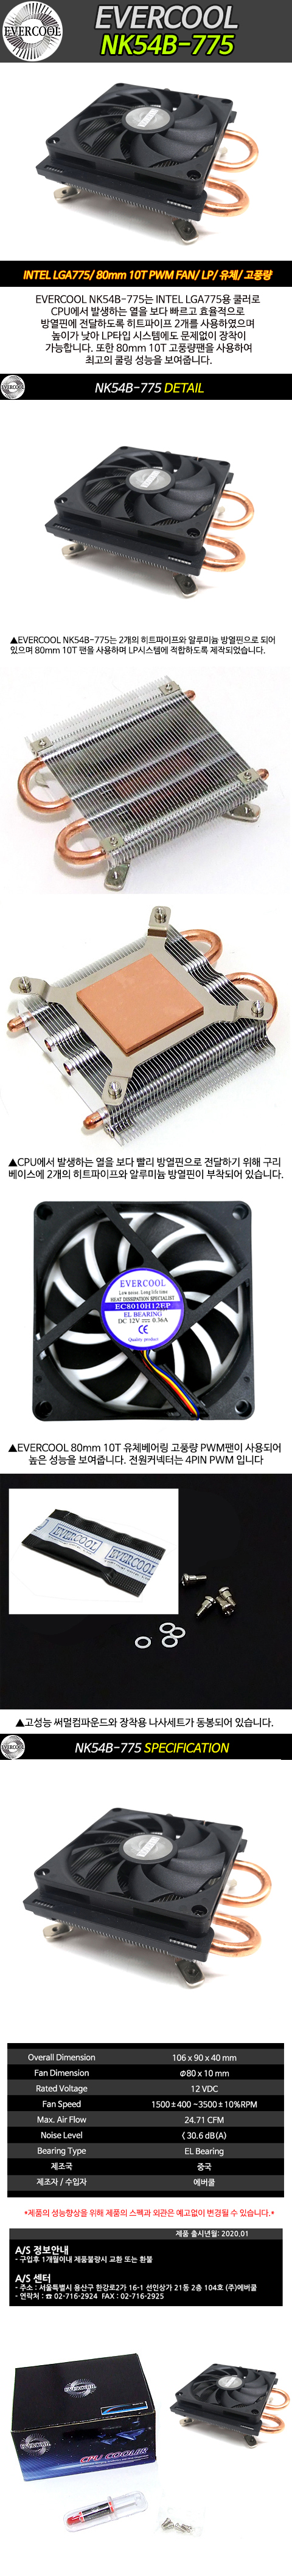 EVERCOOL NK54B-775